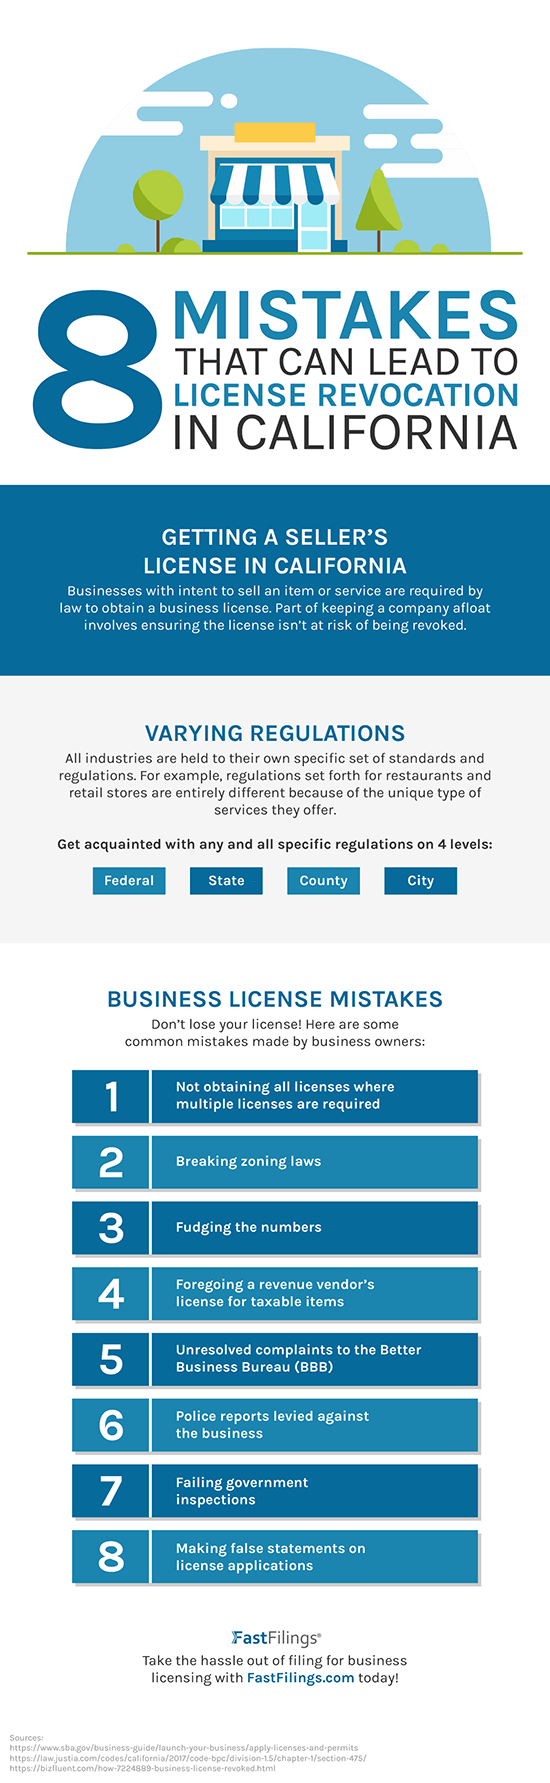 8 Mistakes That Can Lead to License Revocation in California Infographic